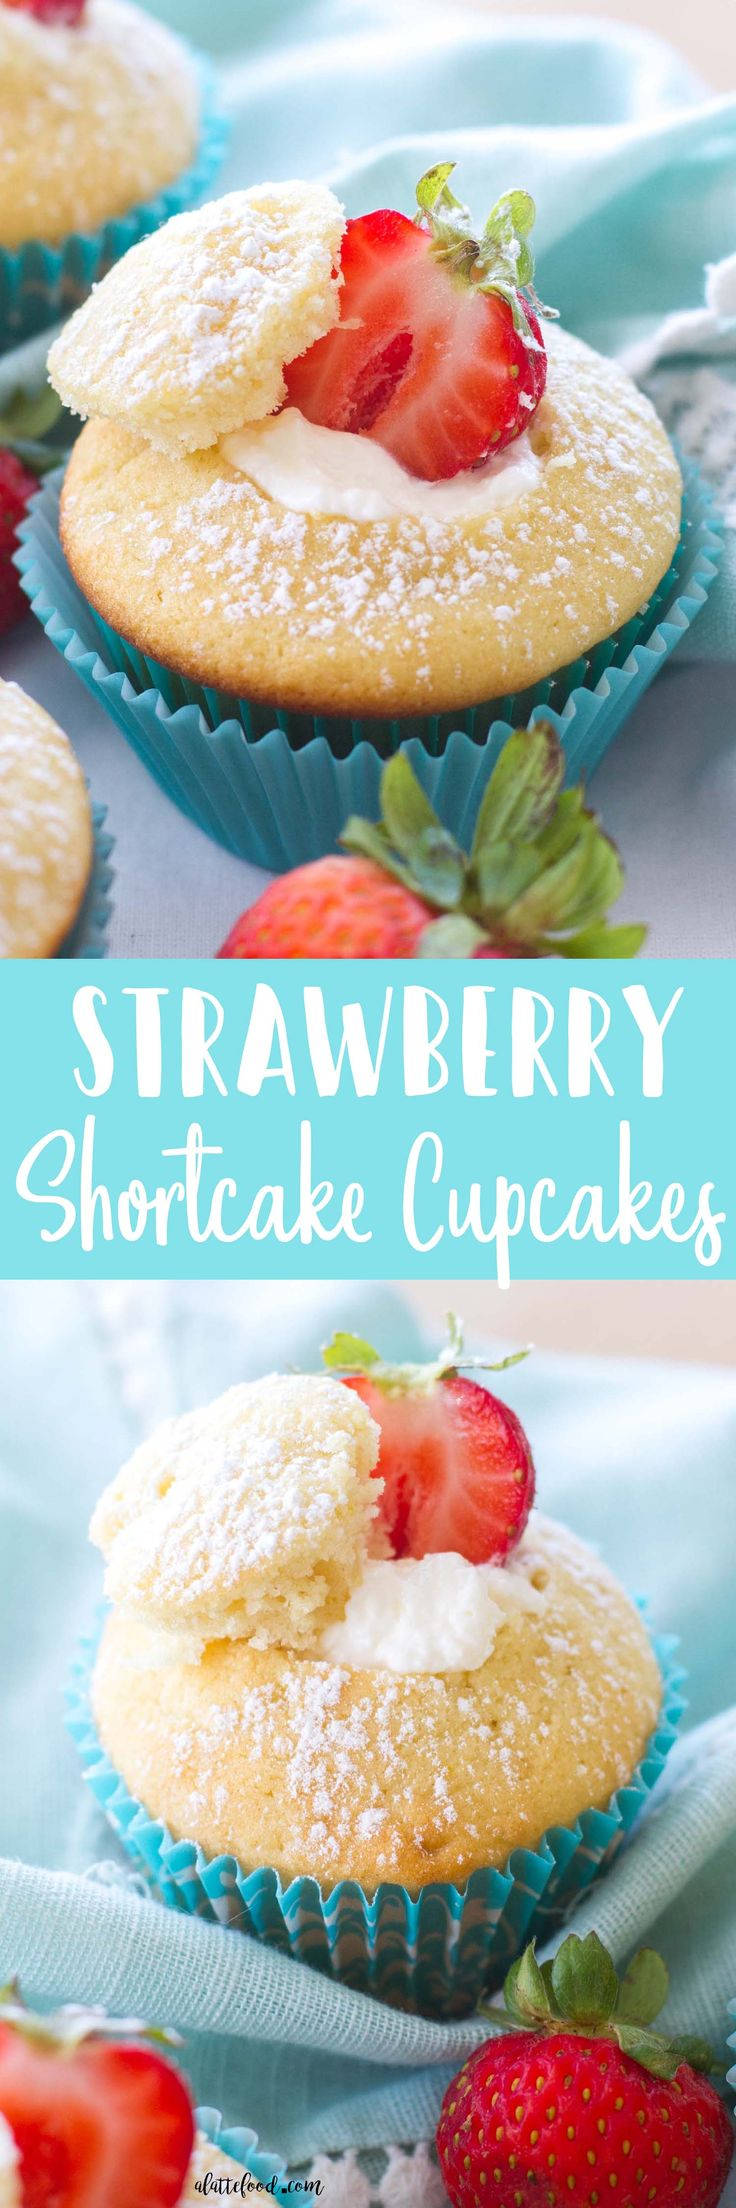 These easy strawberry shortcake cupcakes are light, fluffy, and filled with a homemade whipped cream frosting! Homemade strawberry shortcake cupcakes are such an easy spring dessert! Plus, these would be so cute as a Valentine's Day dessert!